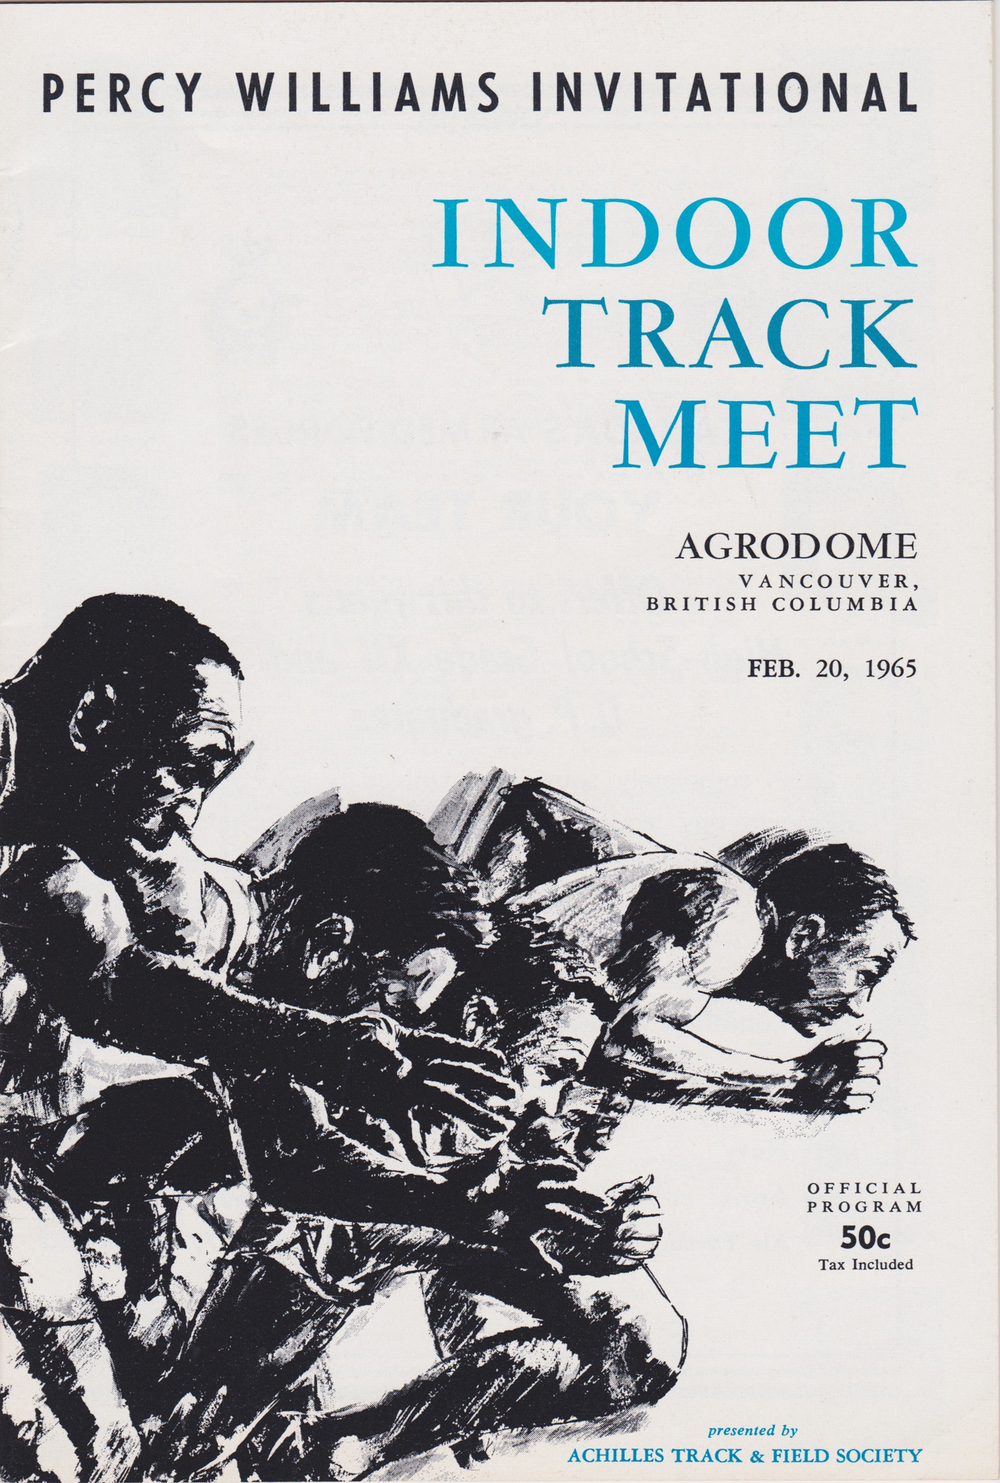 The Achilles Track and Field Society organized the first ever-indoor meet in Vancouver in 1965.  It was  known as the Percy Williams Invitational Indoor Track Meet at the Agrodome on the Pacific National Exhibition grounds.  51 years later Percy Williams memory will be rekindled once again at the Richmond Olympic Oval.